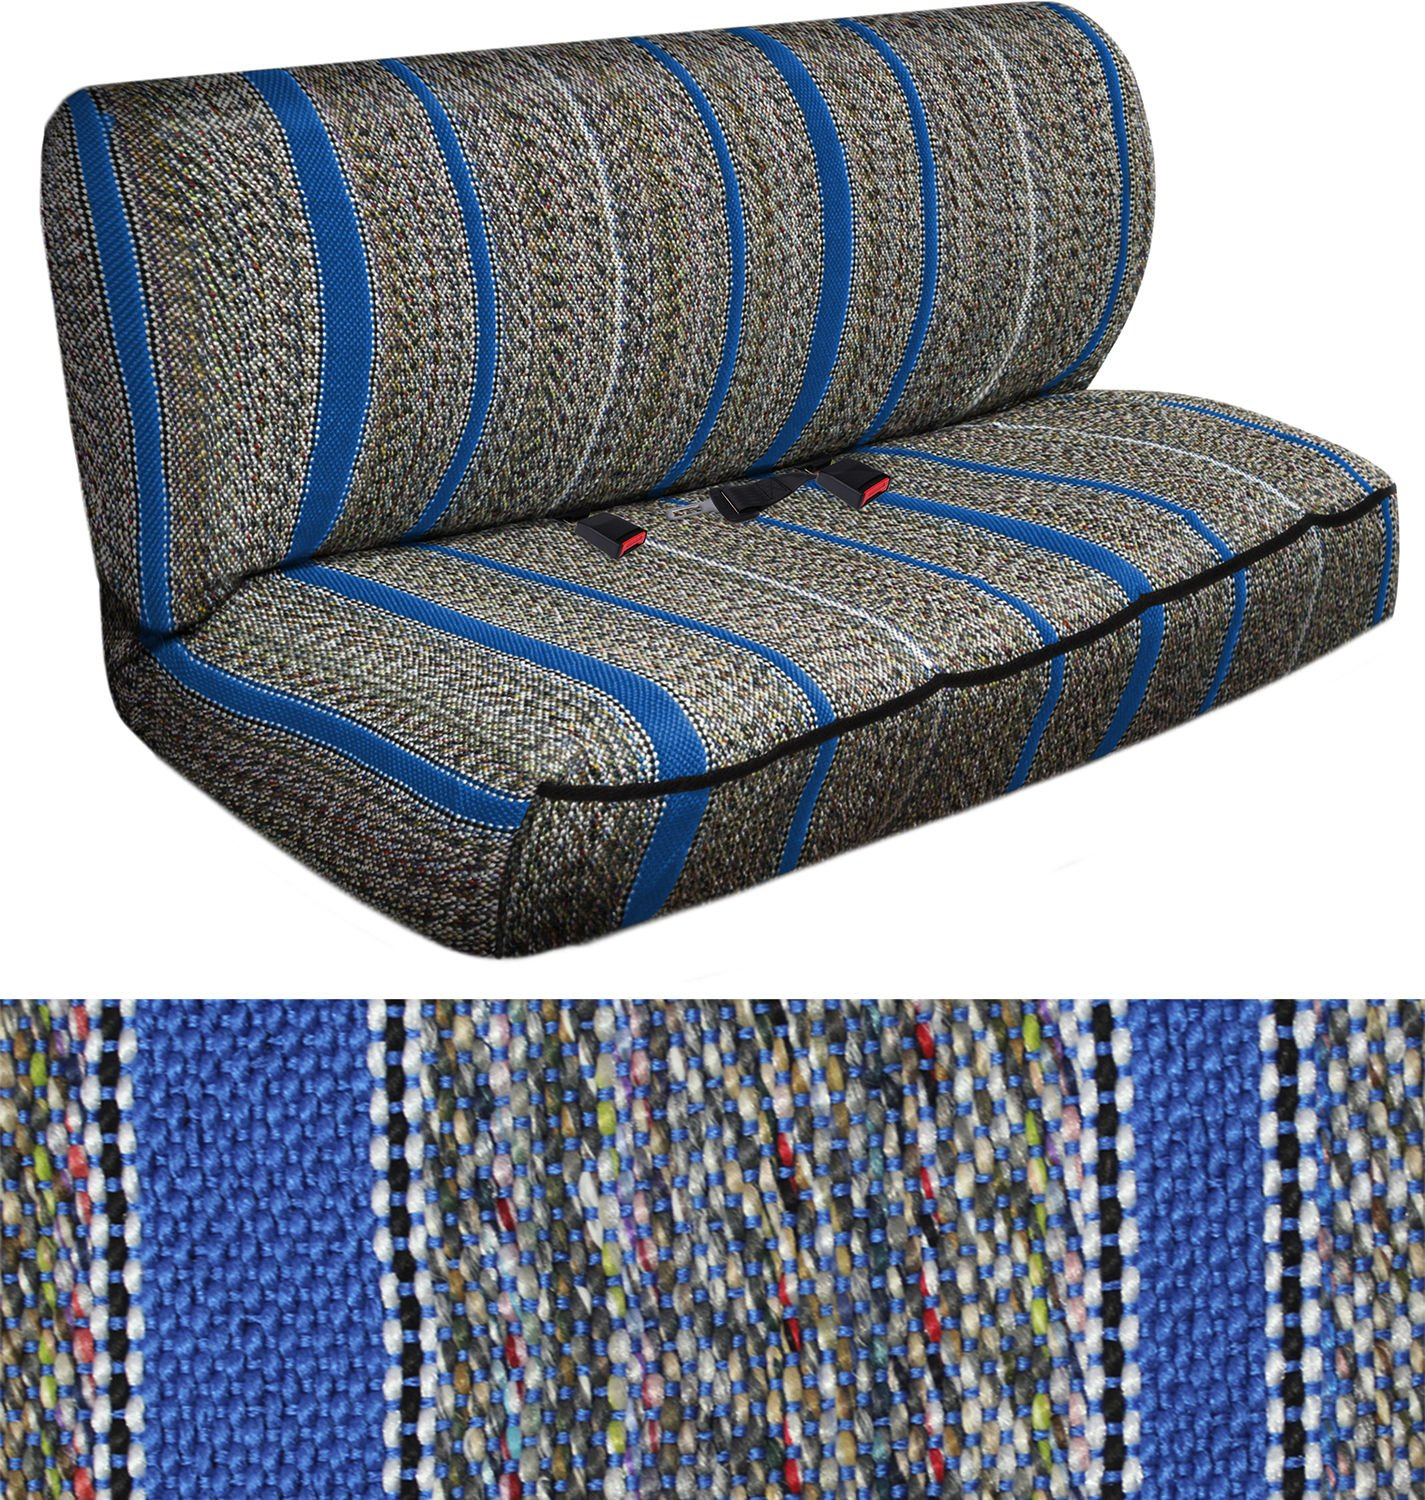 SUV Van Truck Seat Cover Blue Western Woven Saddle Blanket